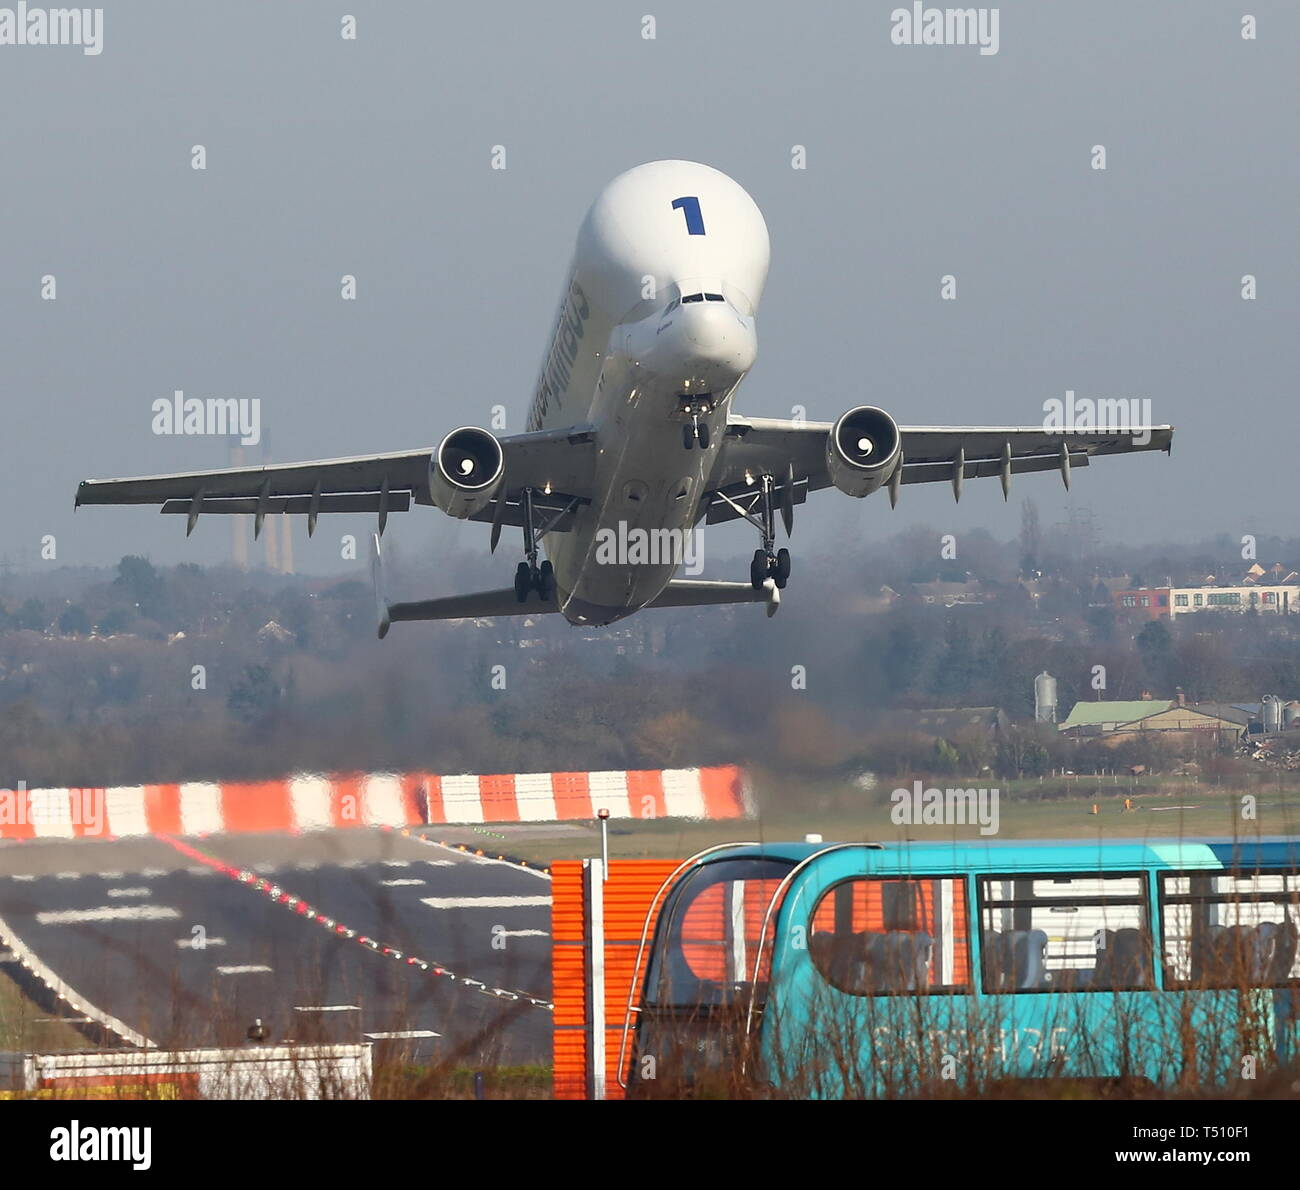 Beluga and Beluga XL taking off from Hawarden Airport credit Ian Fairbrother/Alamy Stock Photos Stock Photo